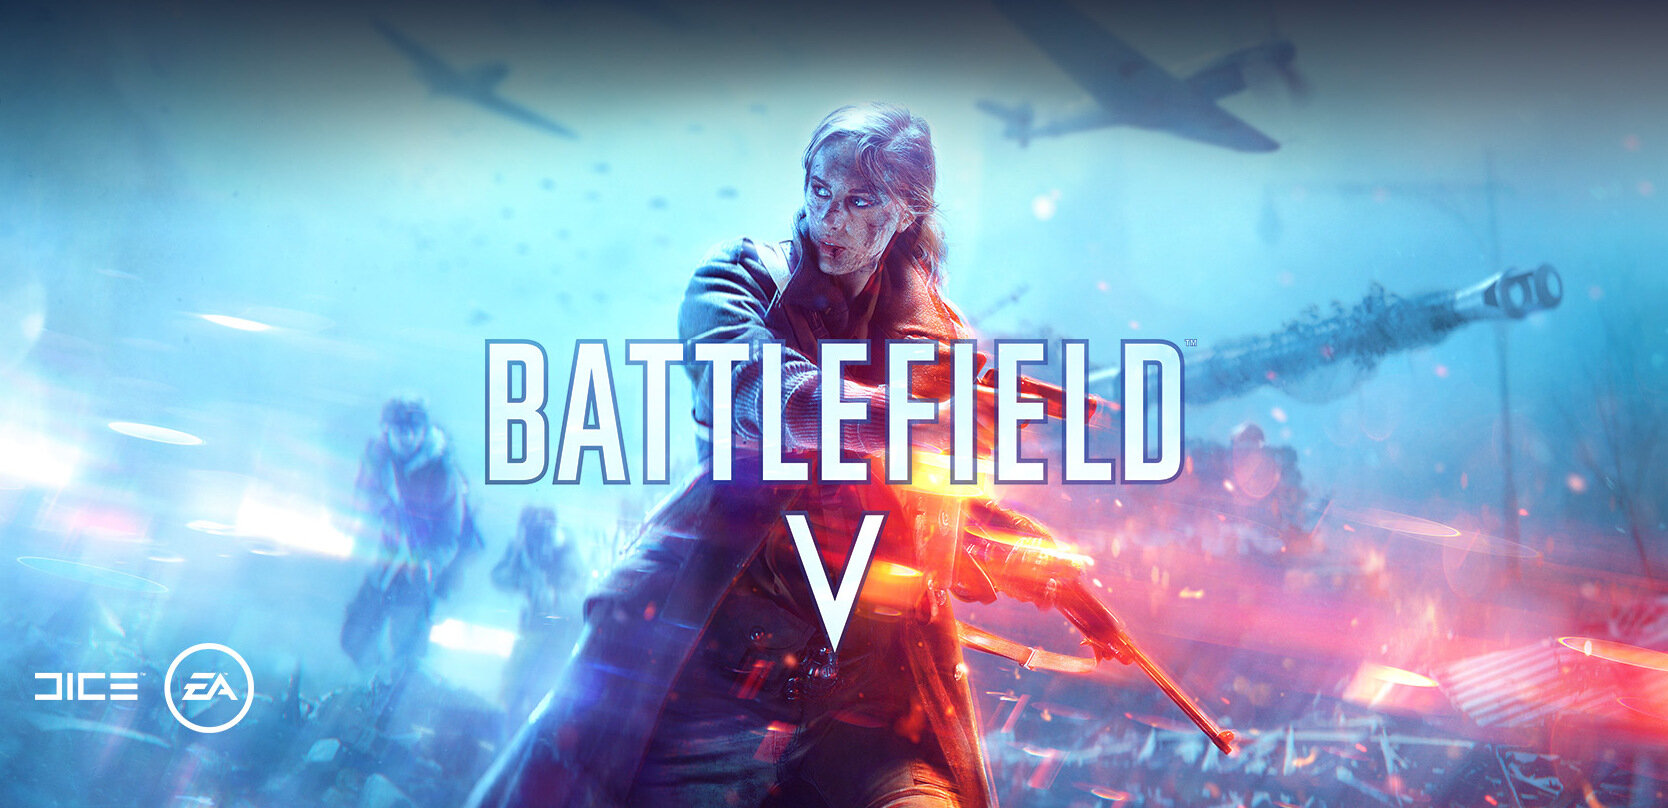 Battlefield V renforce son ray tracing (Ultra) et améliore DLSS